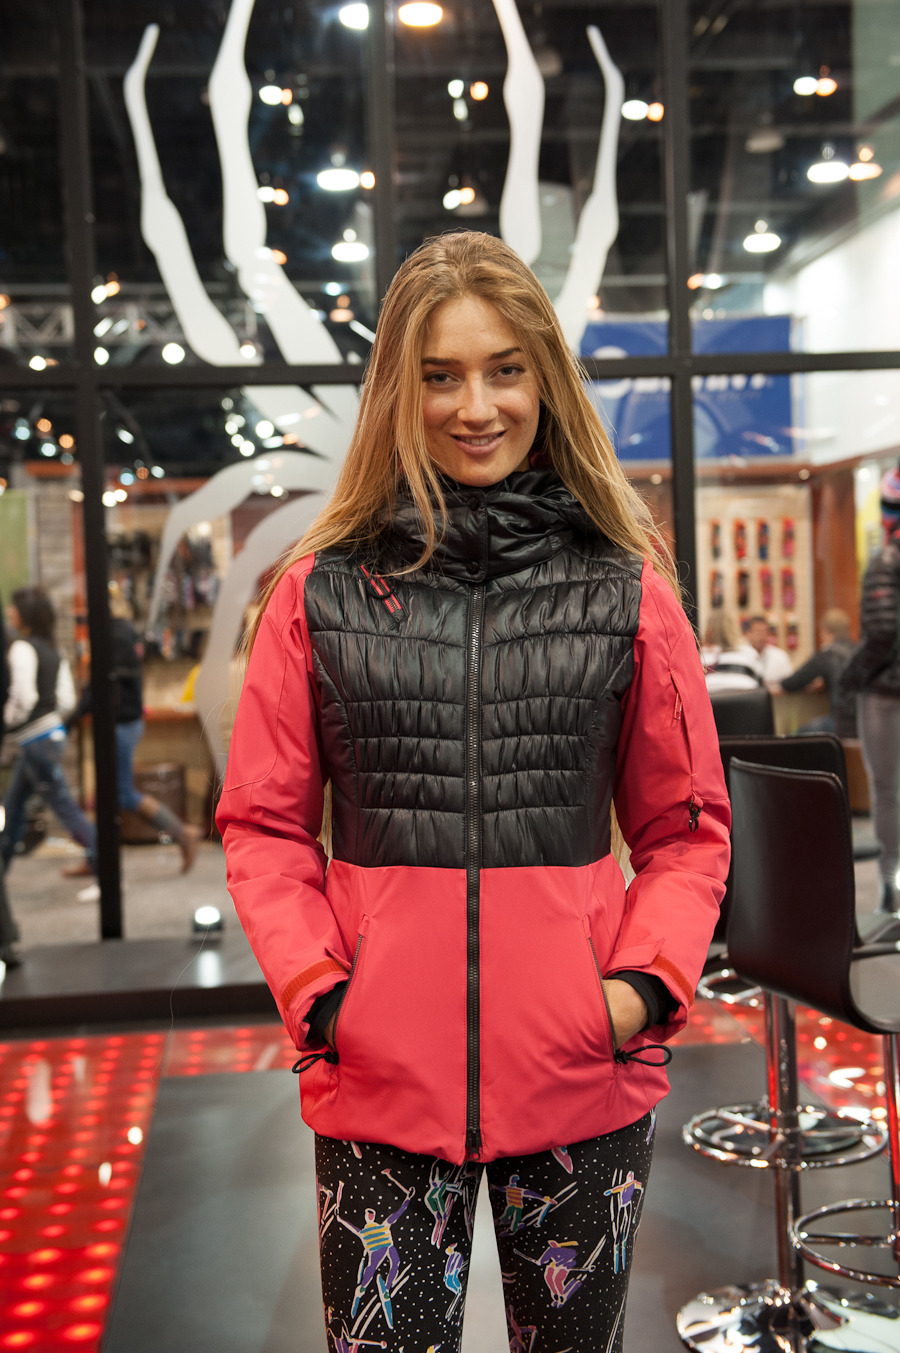 Pro skier Sierra Quitiquit modeling the Moxie jacket from Spyder. - ©Ashleigh Miller Photography